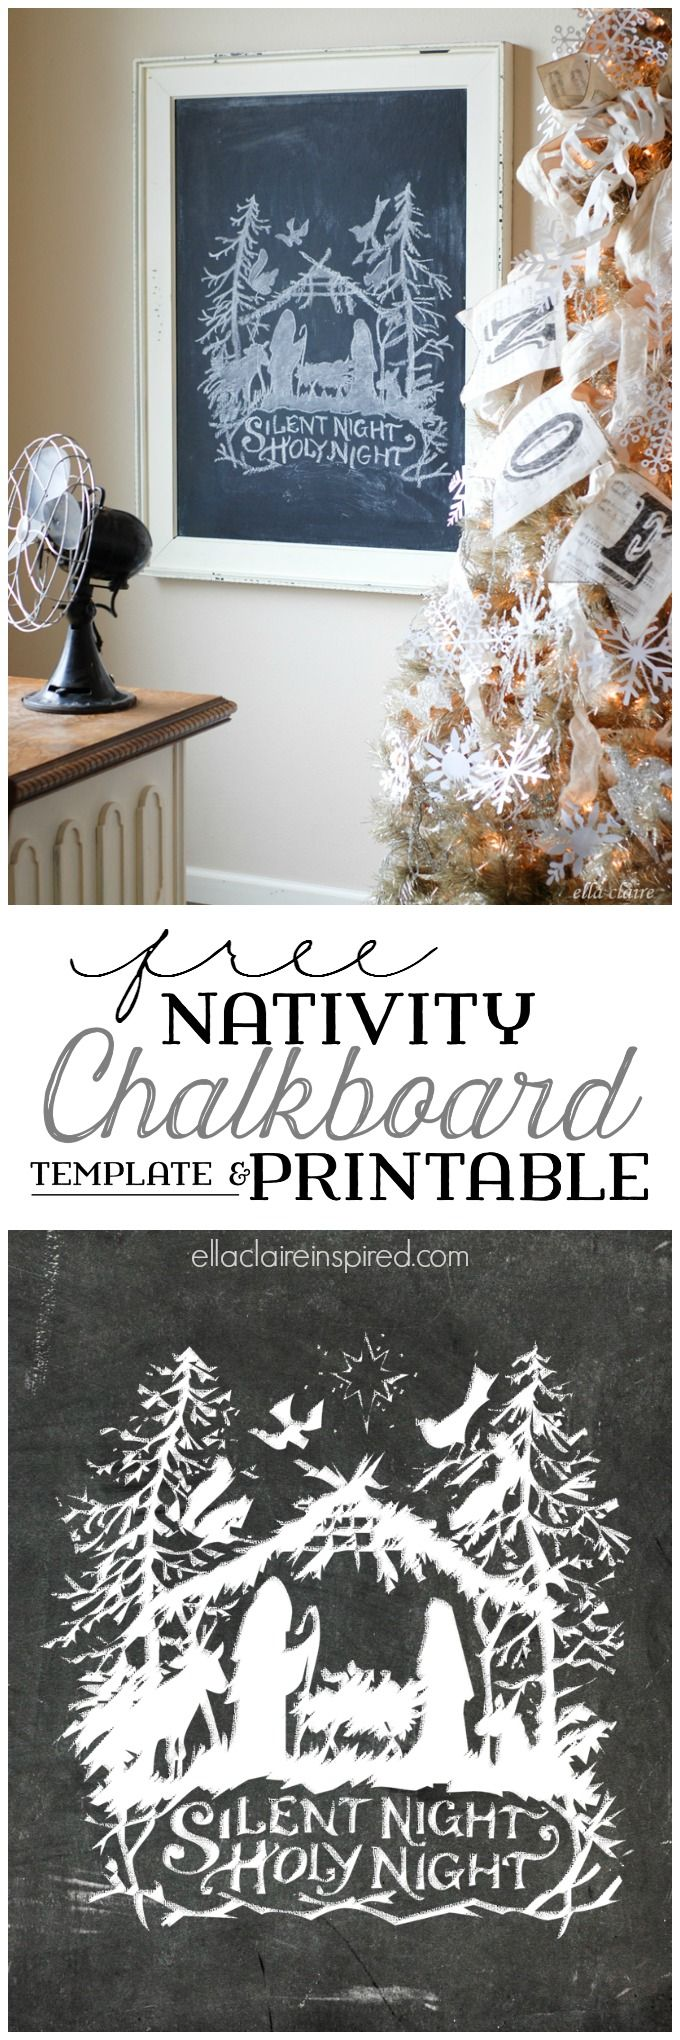 Nativity Chalkboard Art | Free Printable and Template - Ella Claire